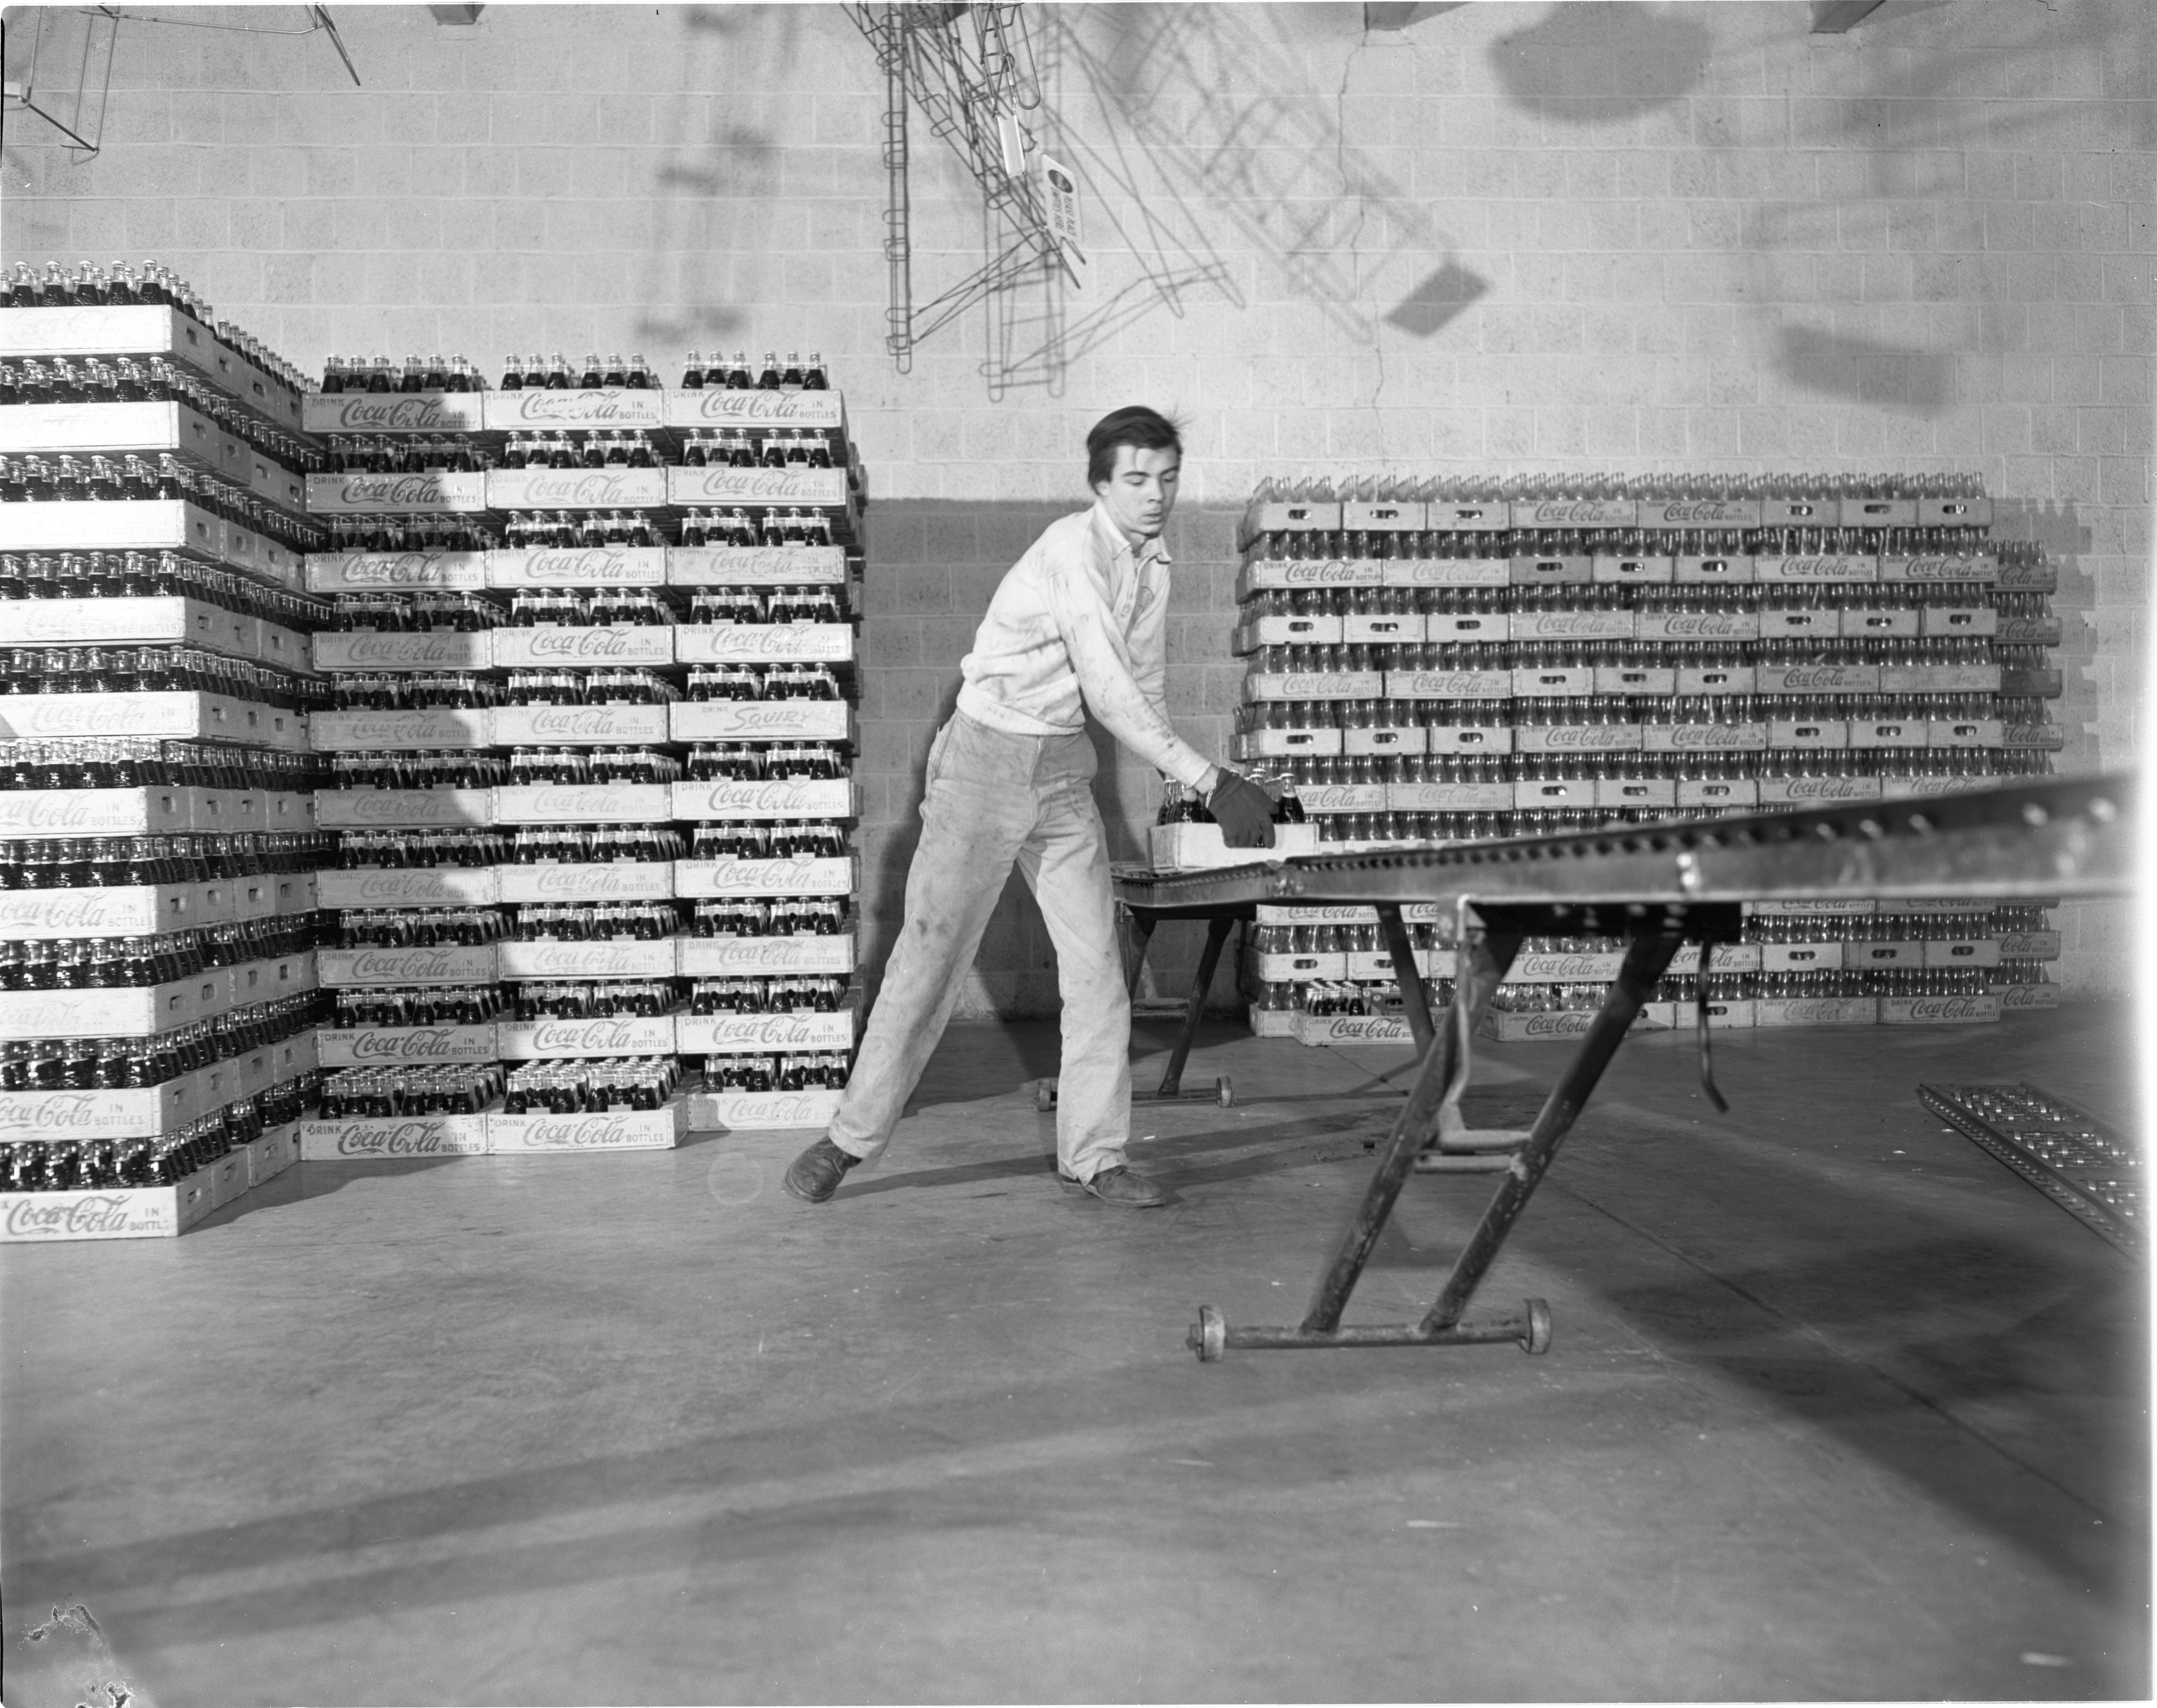 Cases Of Freshly Bottled Coca-Cola Are Removed From The Line At The Kleis Beverage Co., January 1956 image